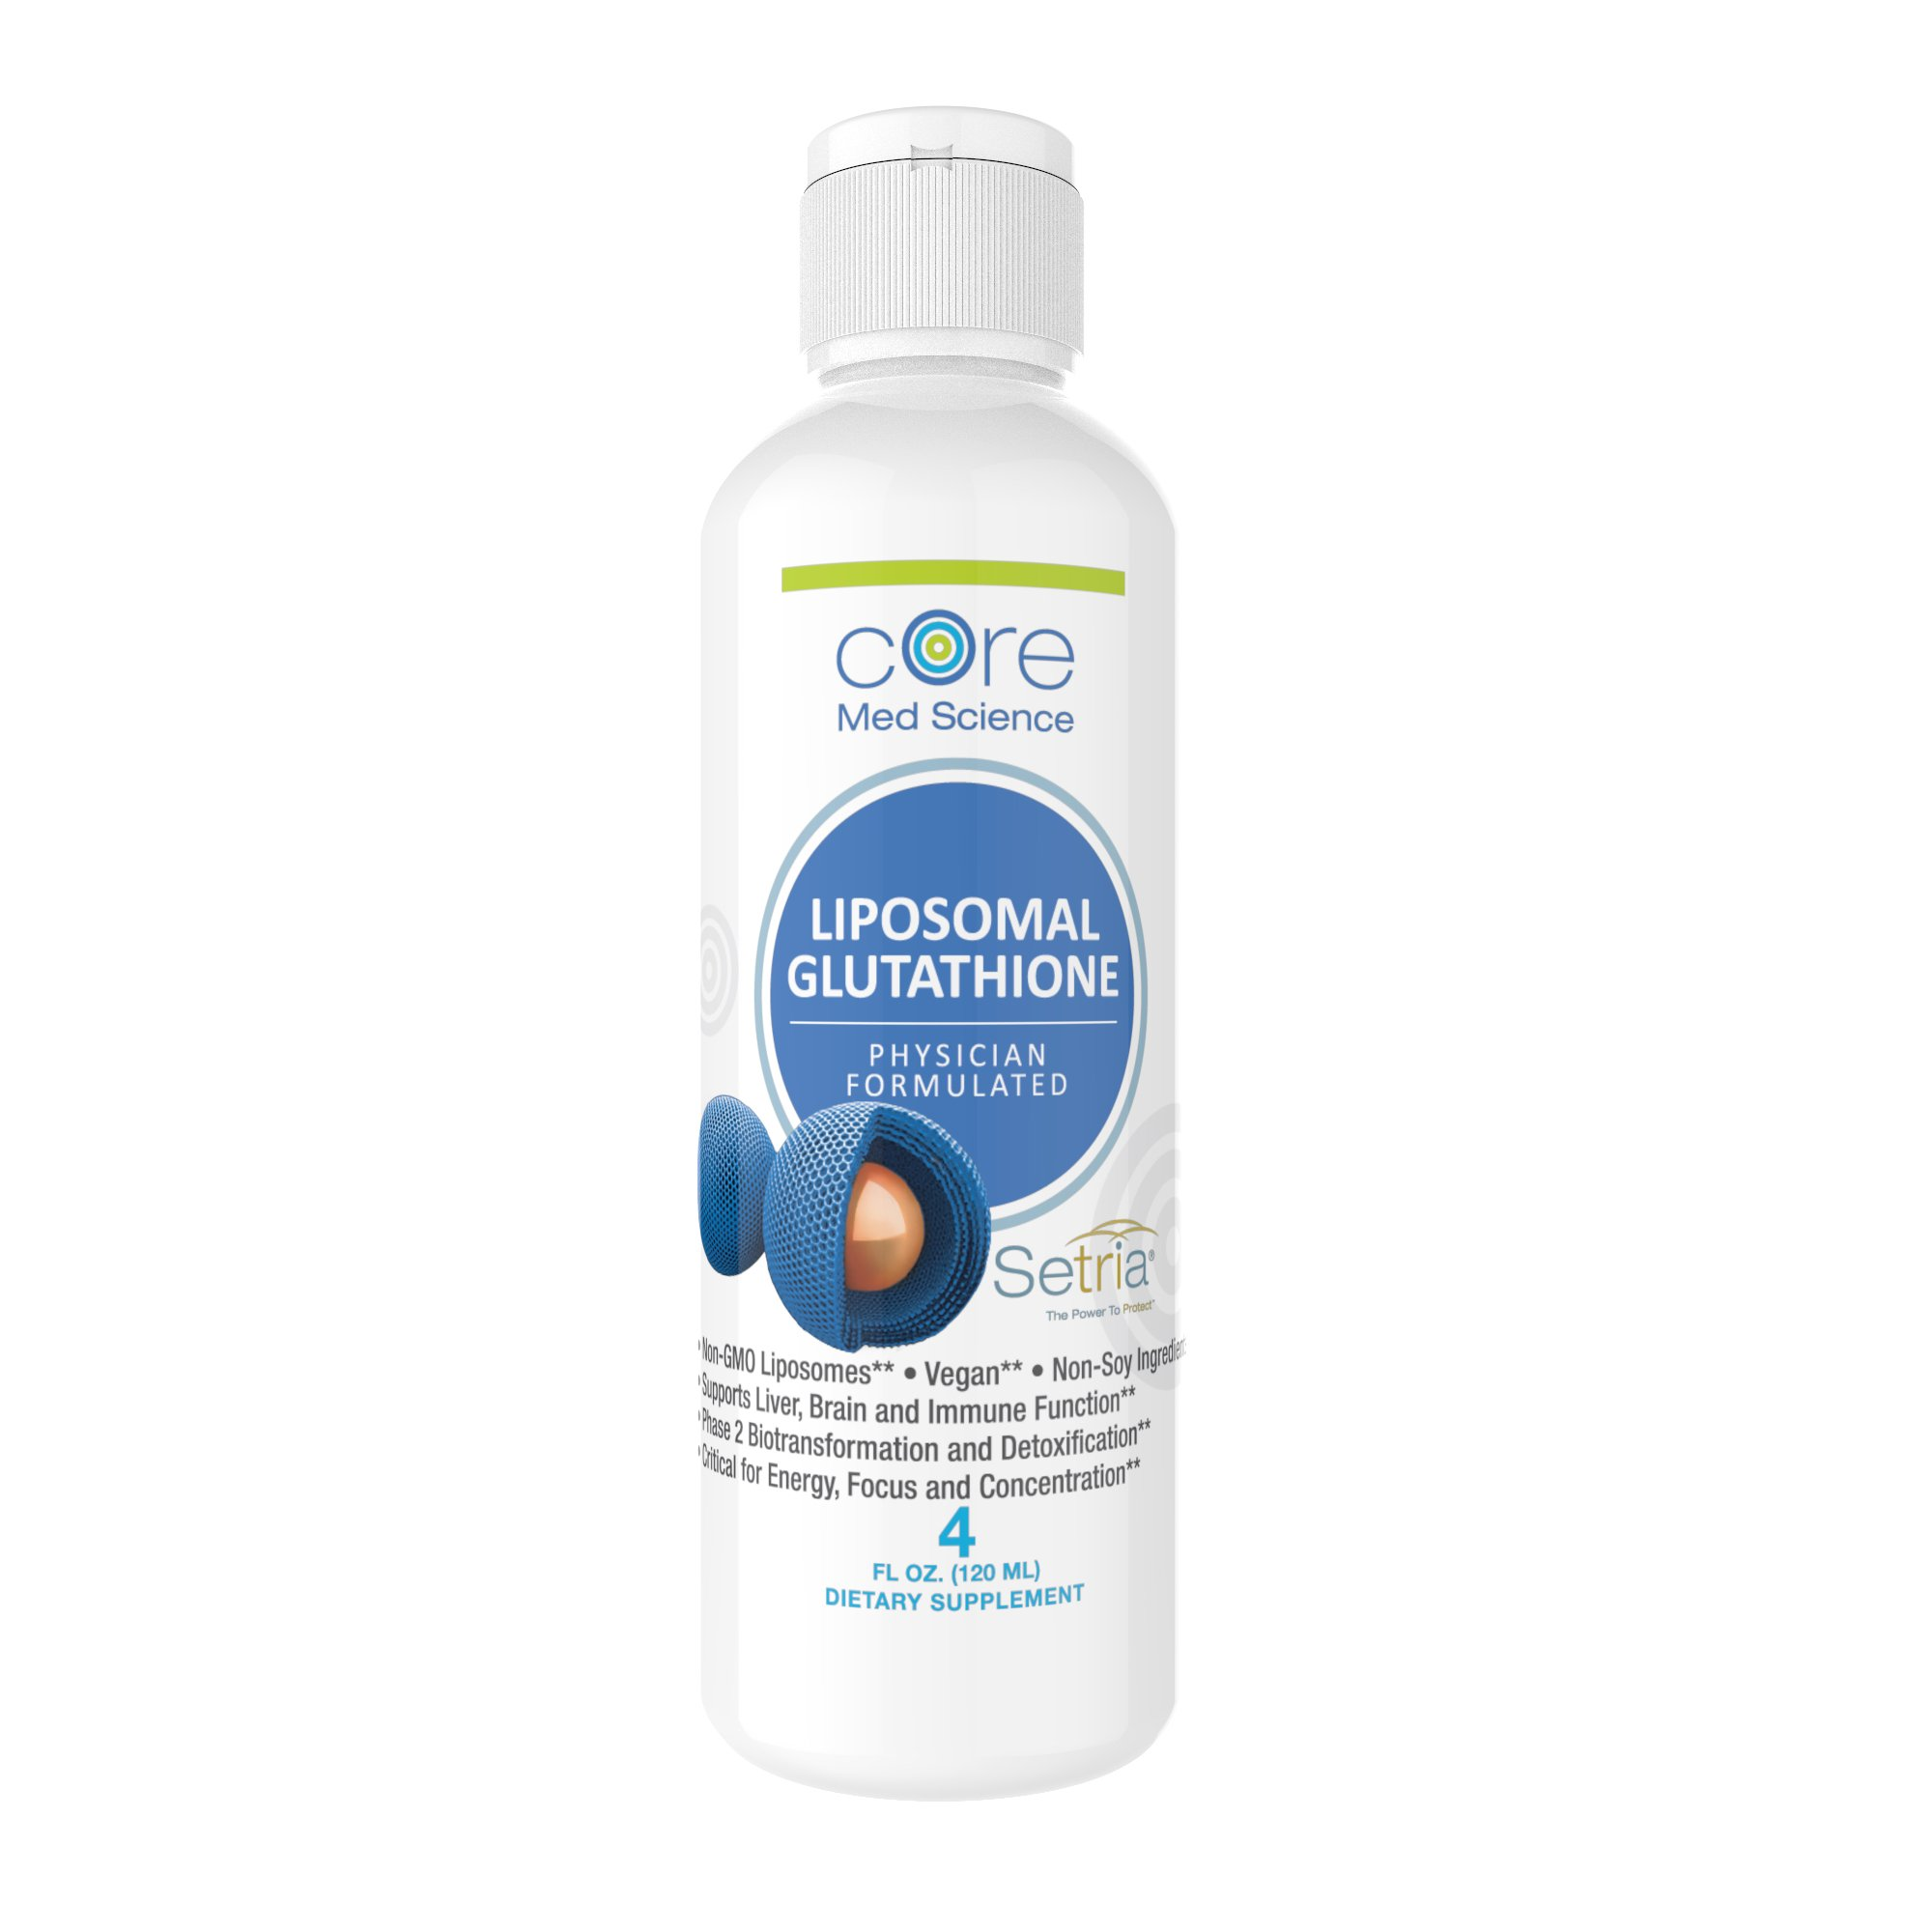 "Optimized Liposomal Glutathione 500 mg – China Free Reduced L-Glutathione ""Setria"" brand + Phosphatidylcholine 500mg 